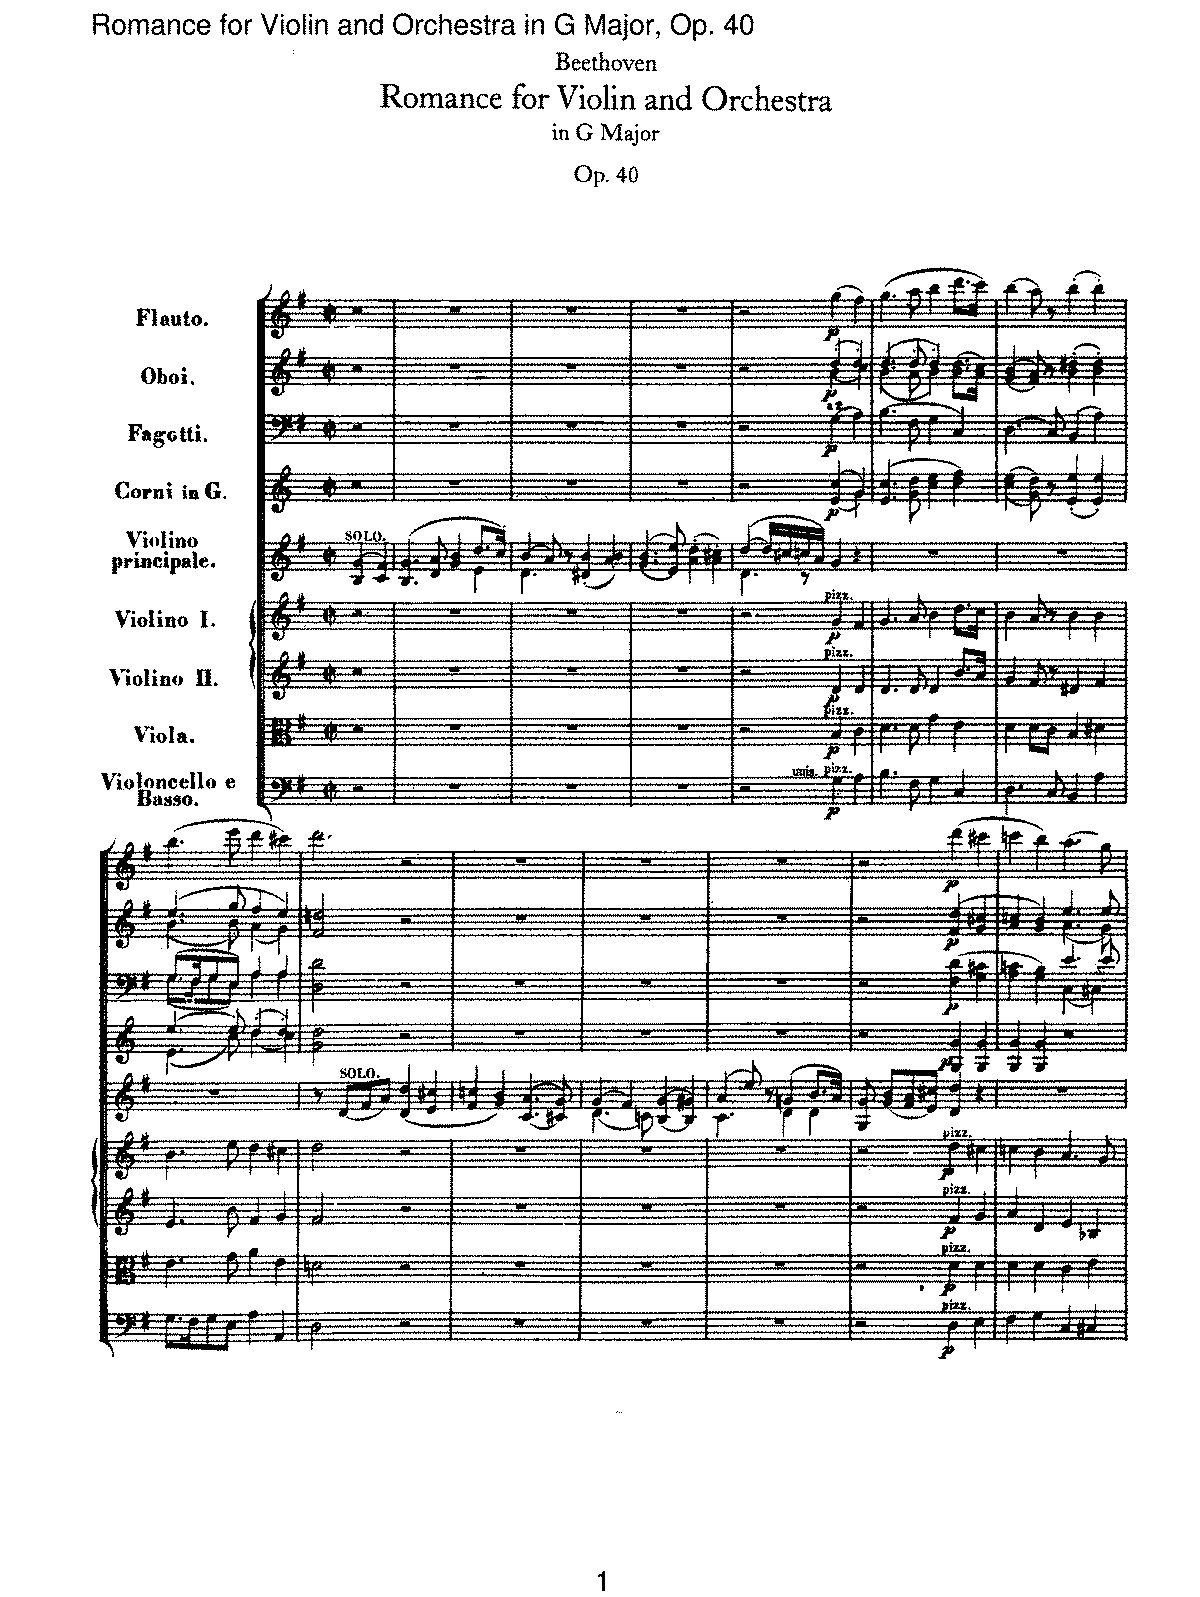 Beethoven - Romance for Violin and Orchestra in G Major, Op 40.pdf